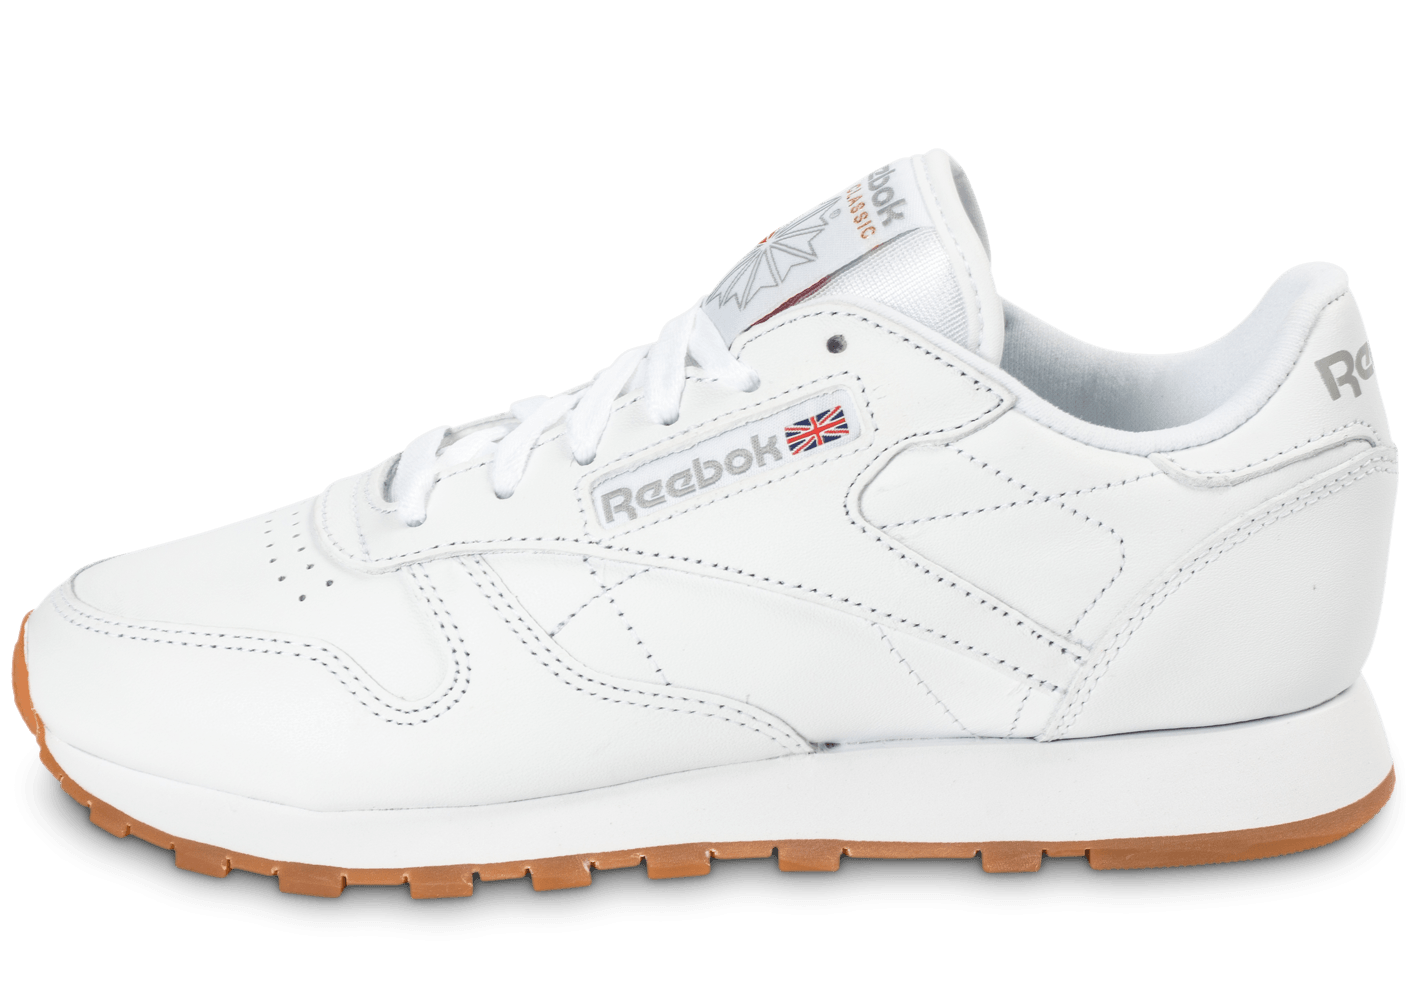 b399b06763422 Reebok Classic Leather W Gum blanche - Chaussures Baskets femme - Chausport